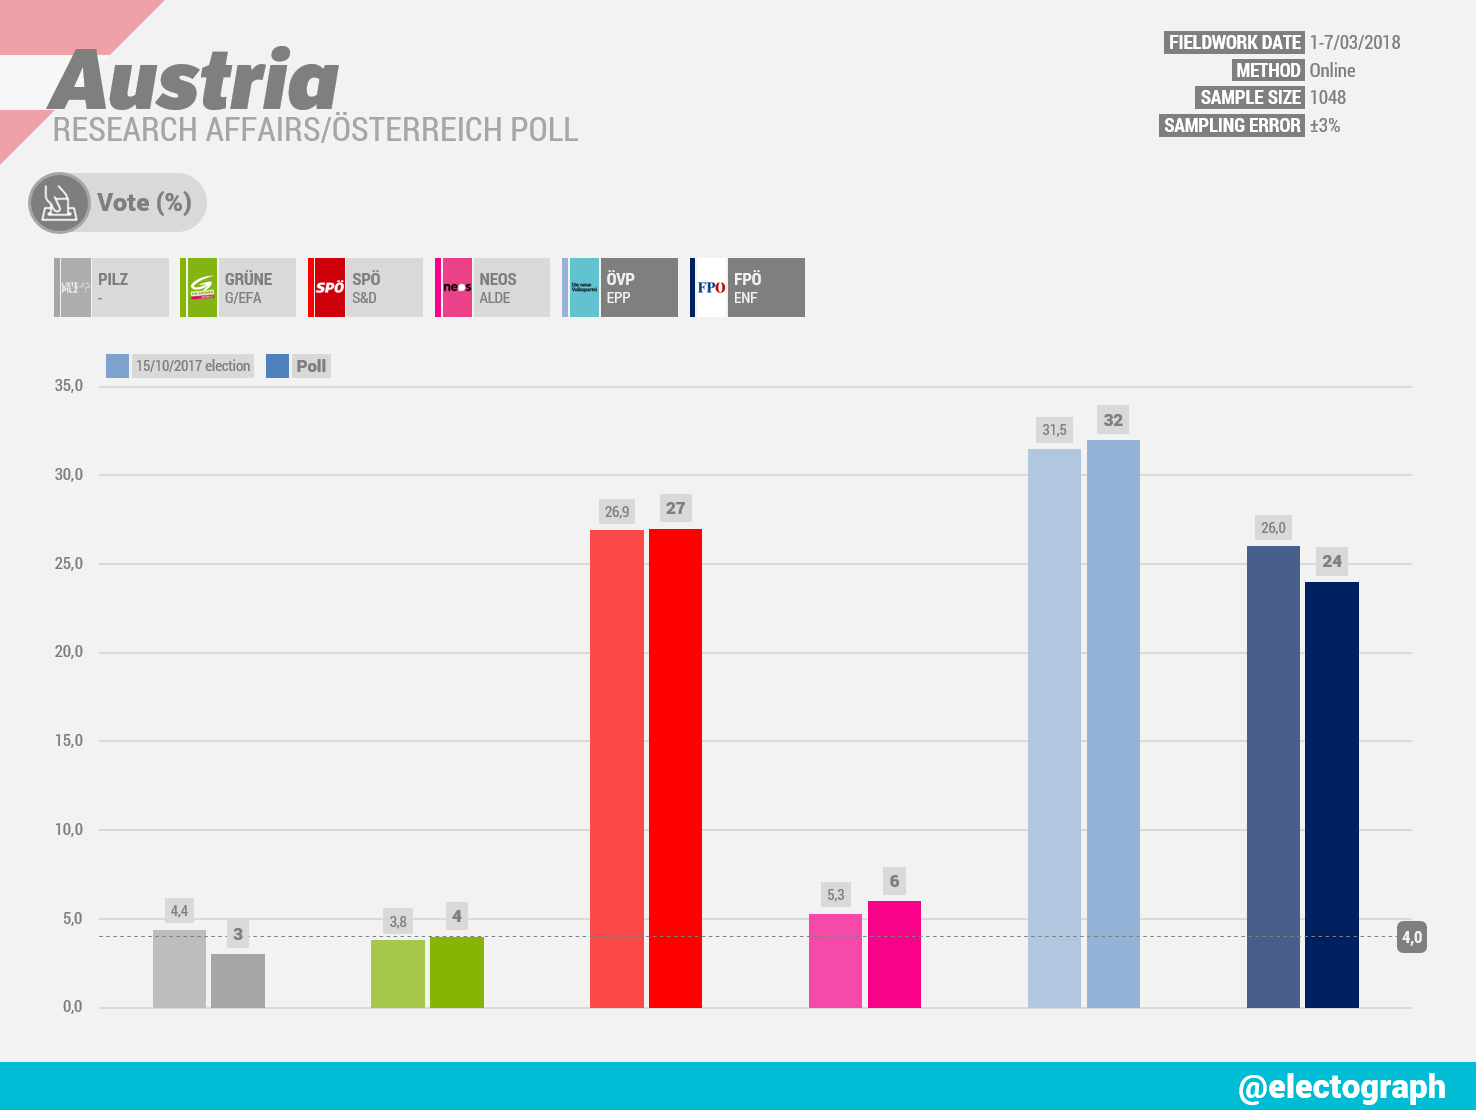 AUSTRIA Research Affairs poll chart for Österreich, March 2018